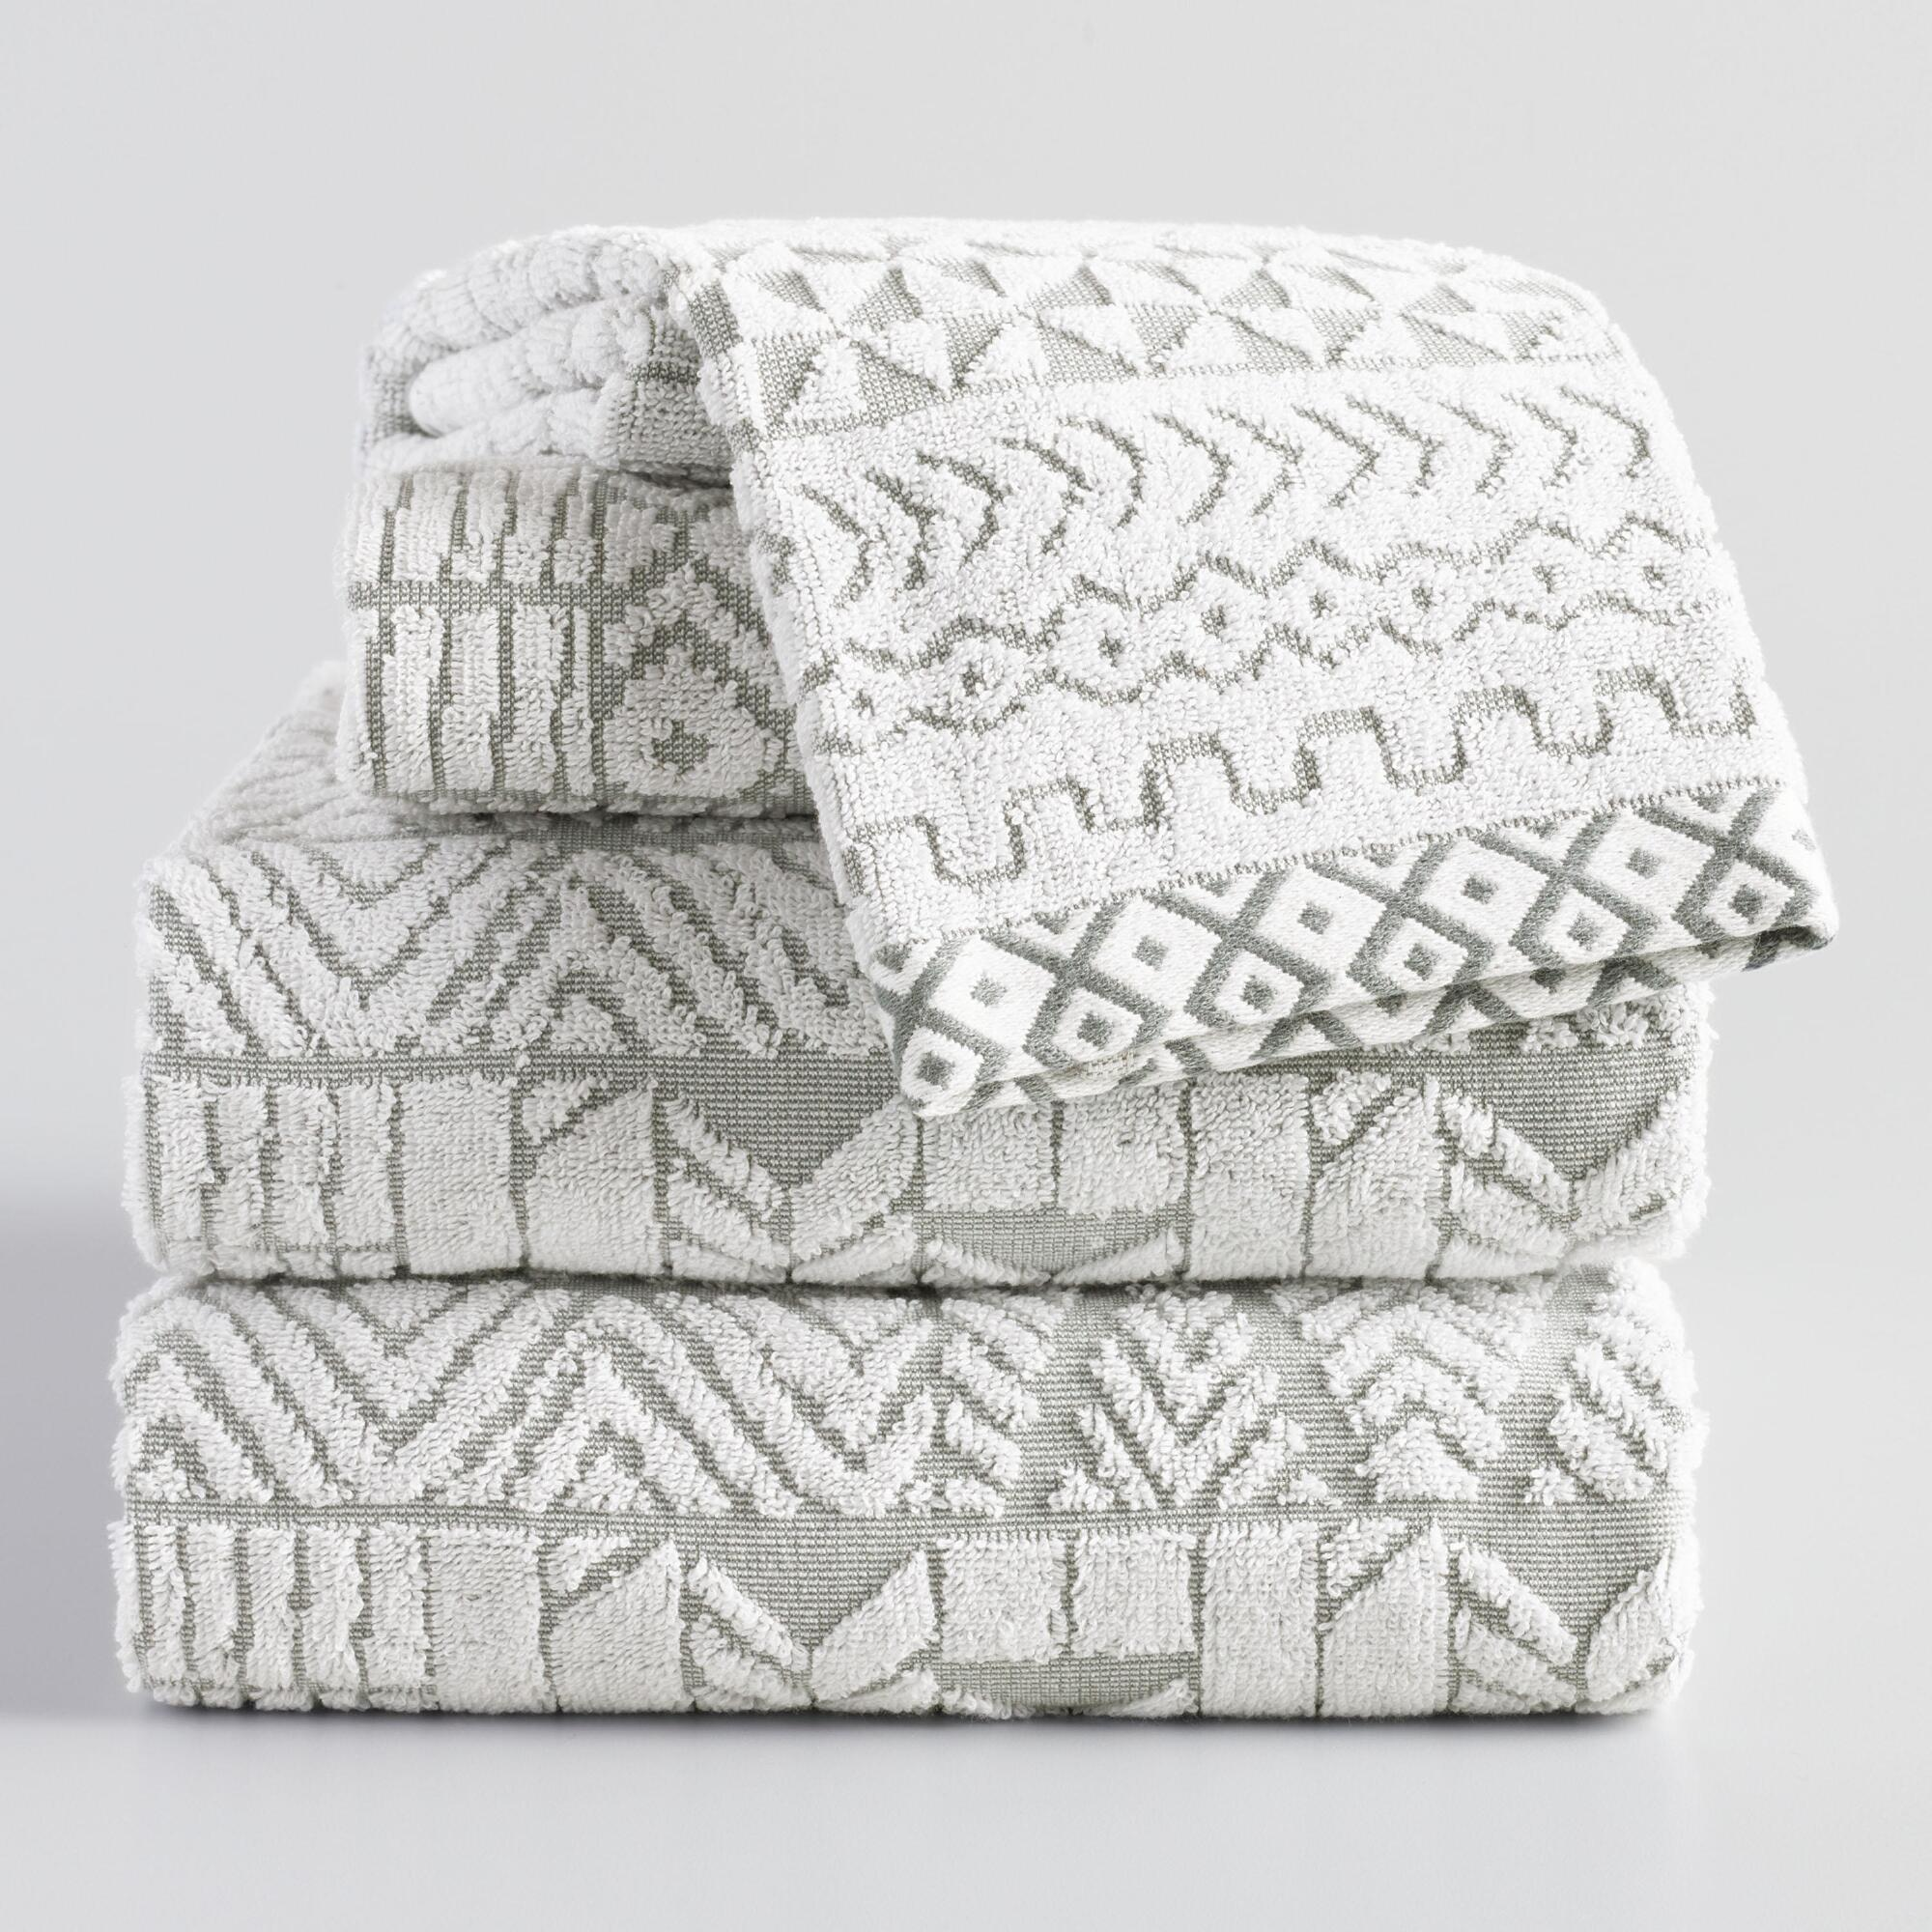 Gray and White Geometric Sculpted Sahar Towel Collection by World Market